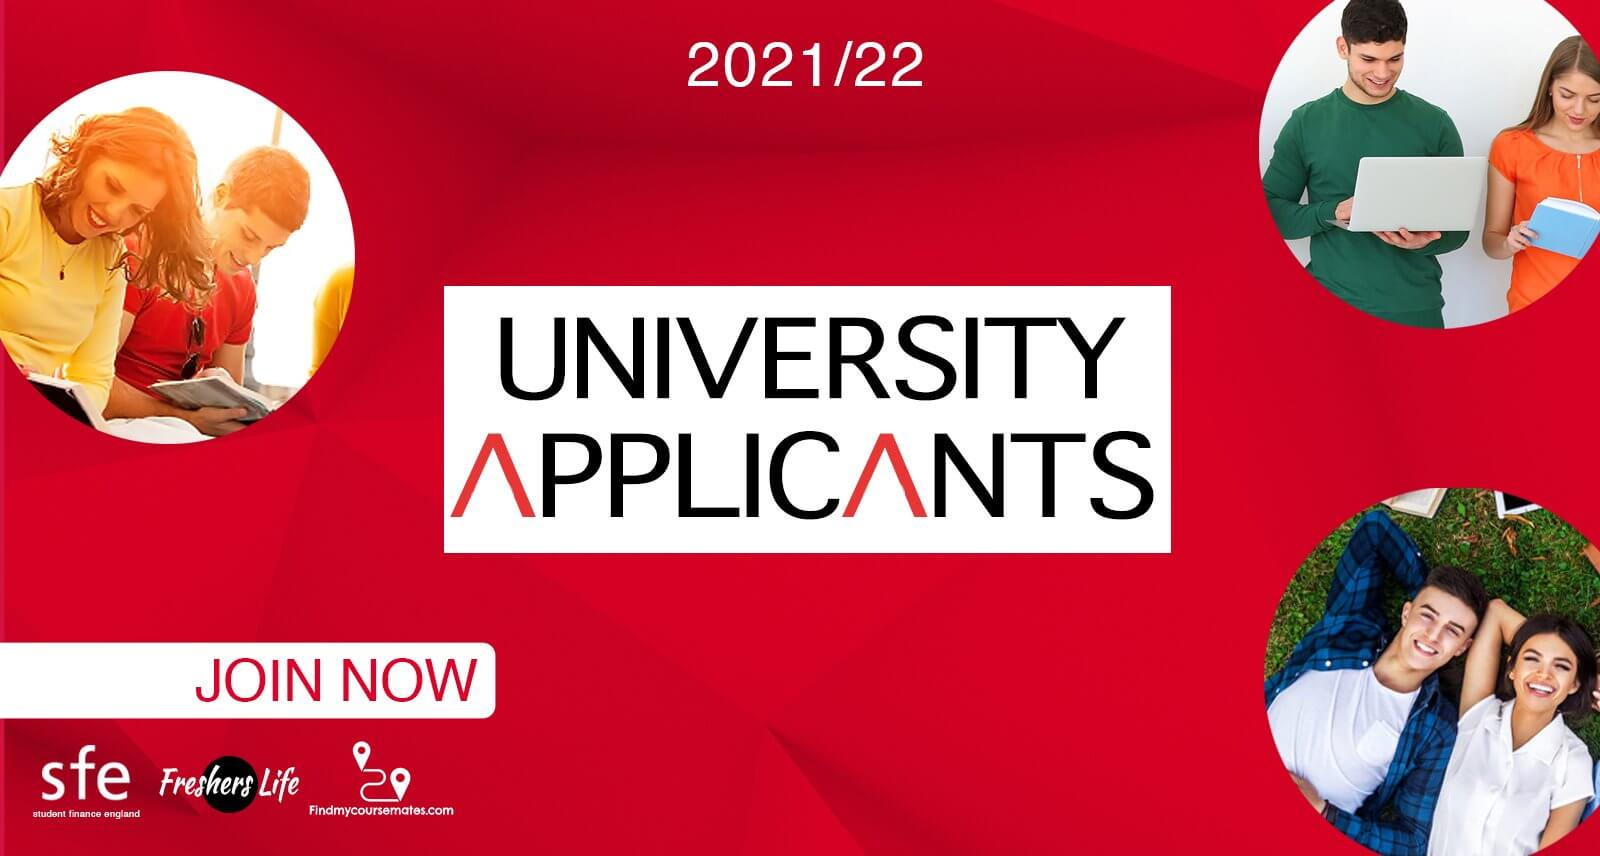 University Applicants Guide - Cover Photo